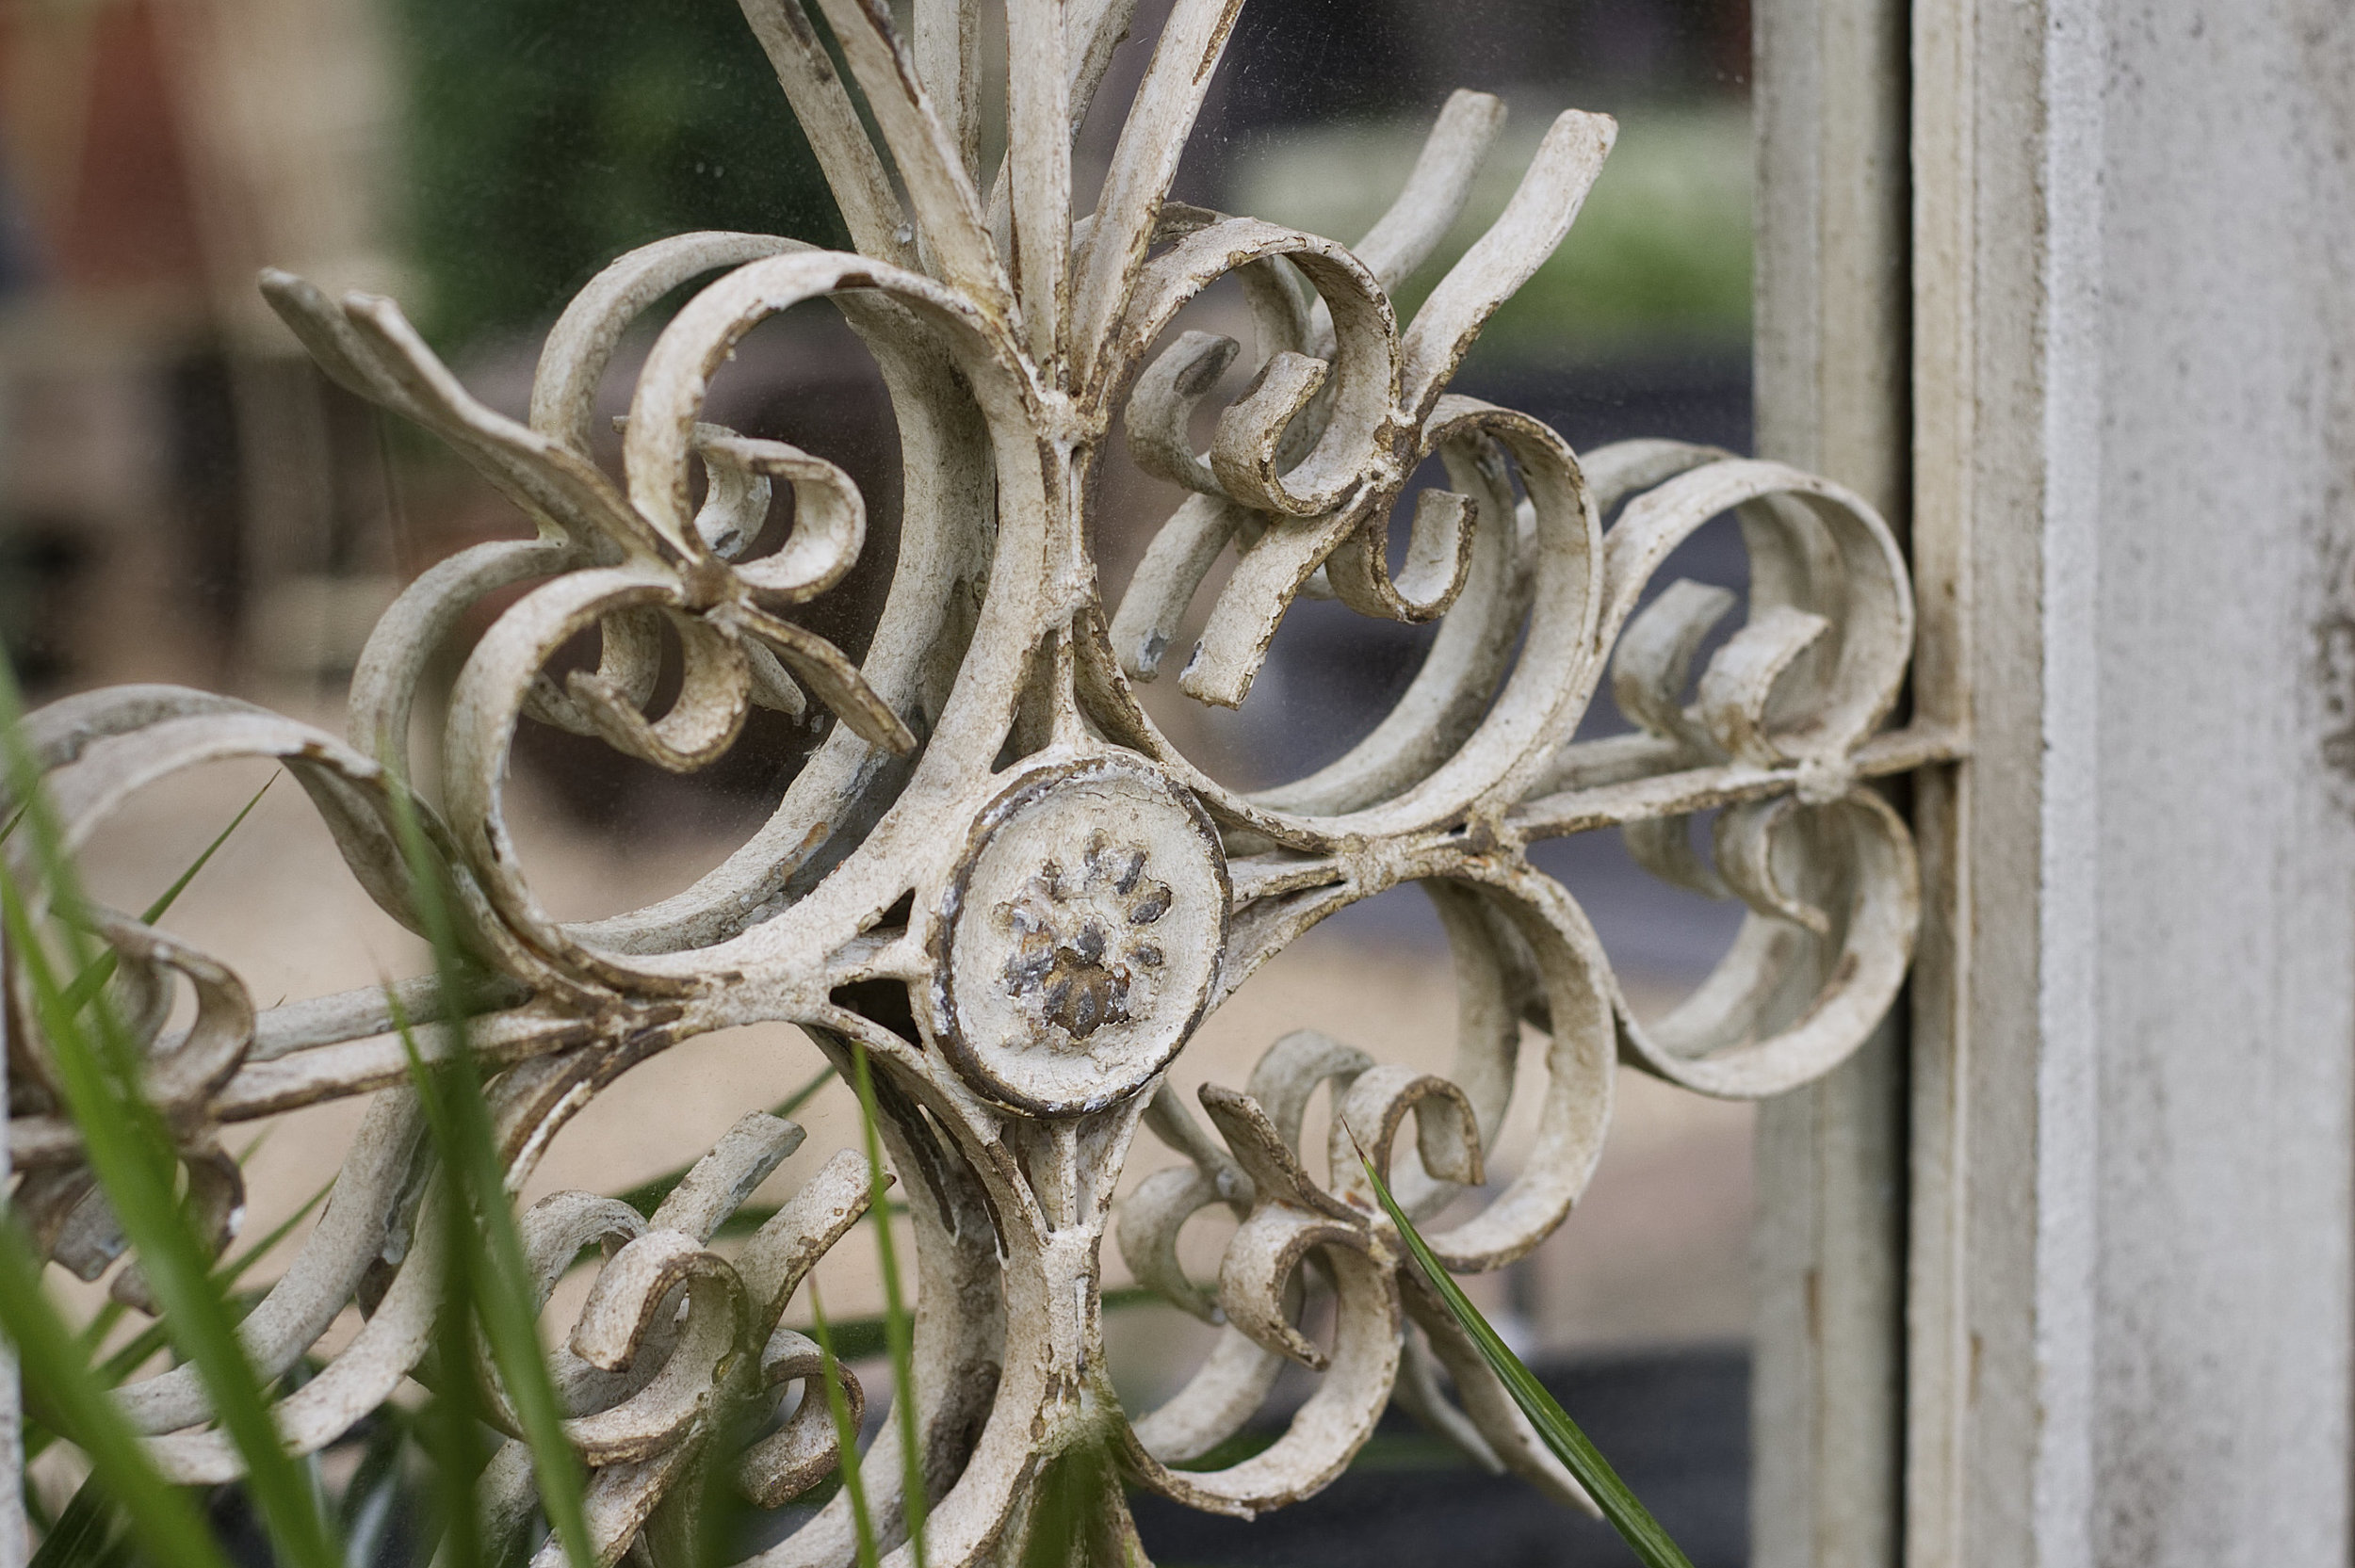 close-up view of metal railing with intricate swirling design